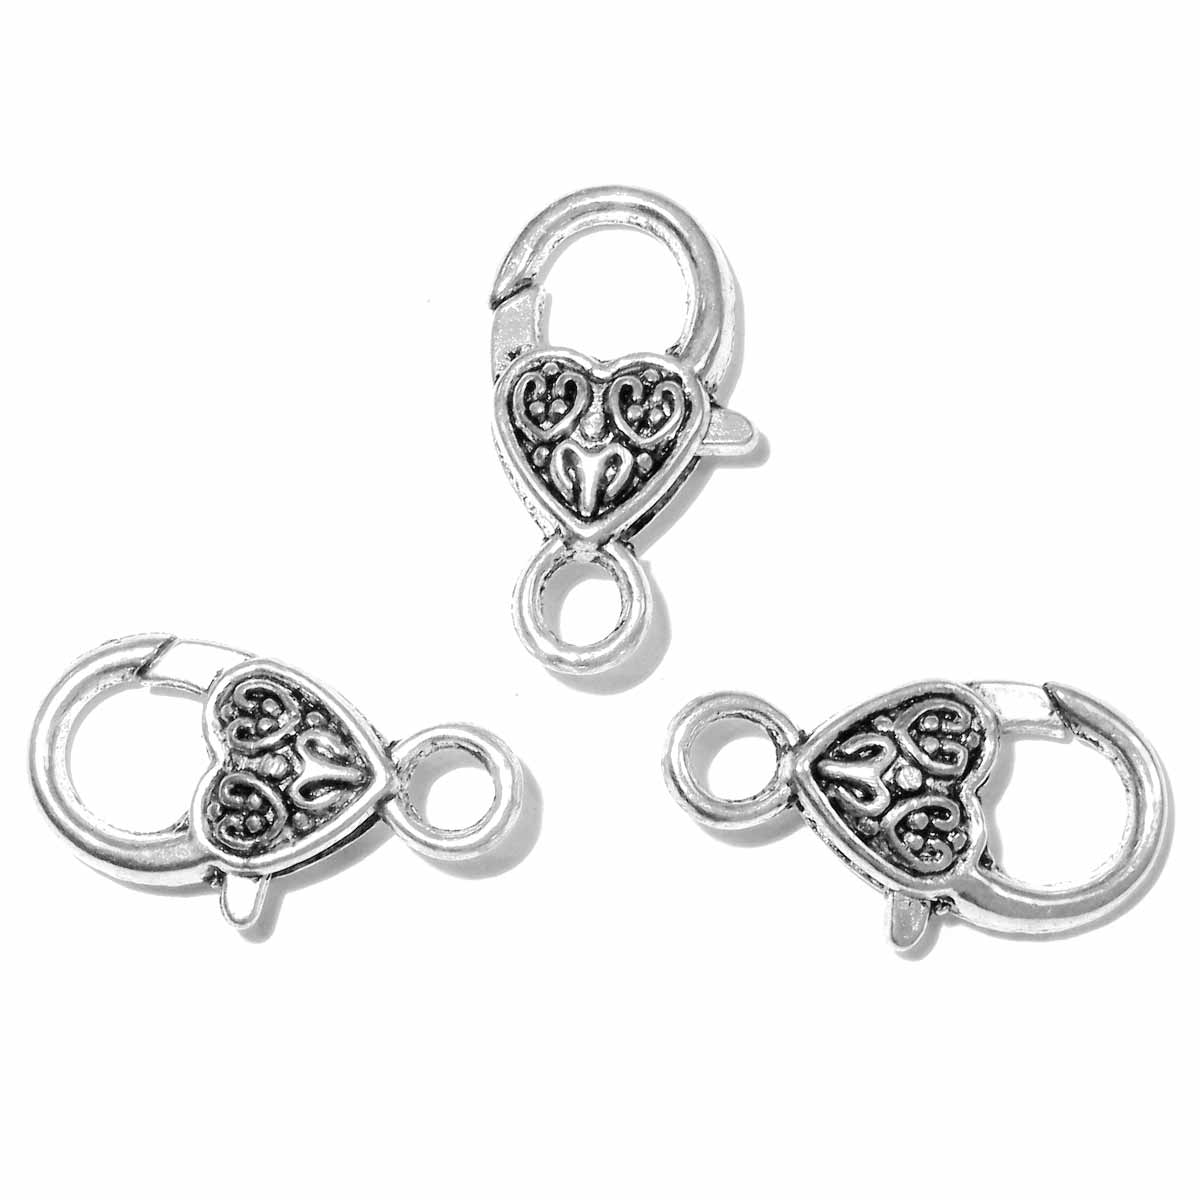 Heart Lobster Clasp 26x14mm Antique Silver 3pcs